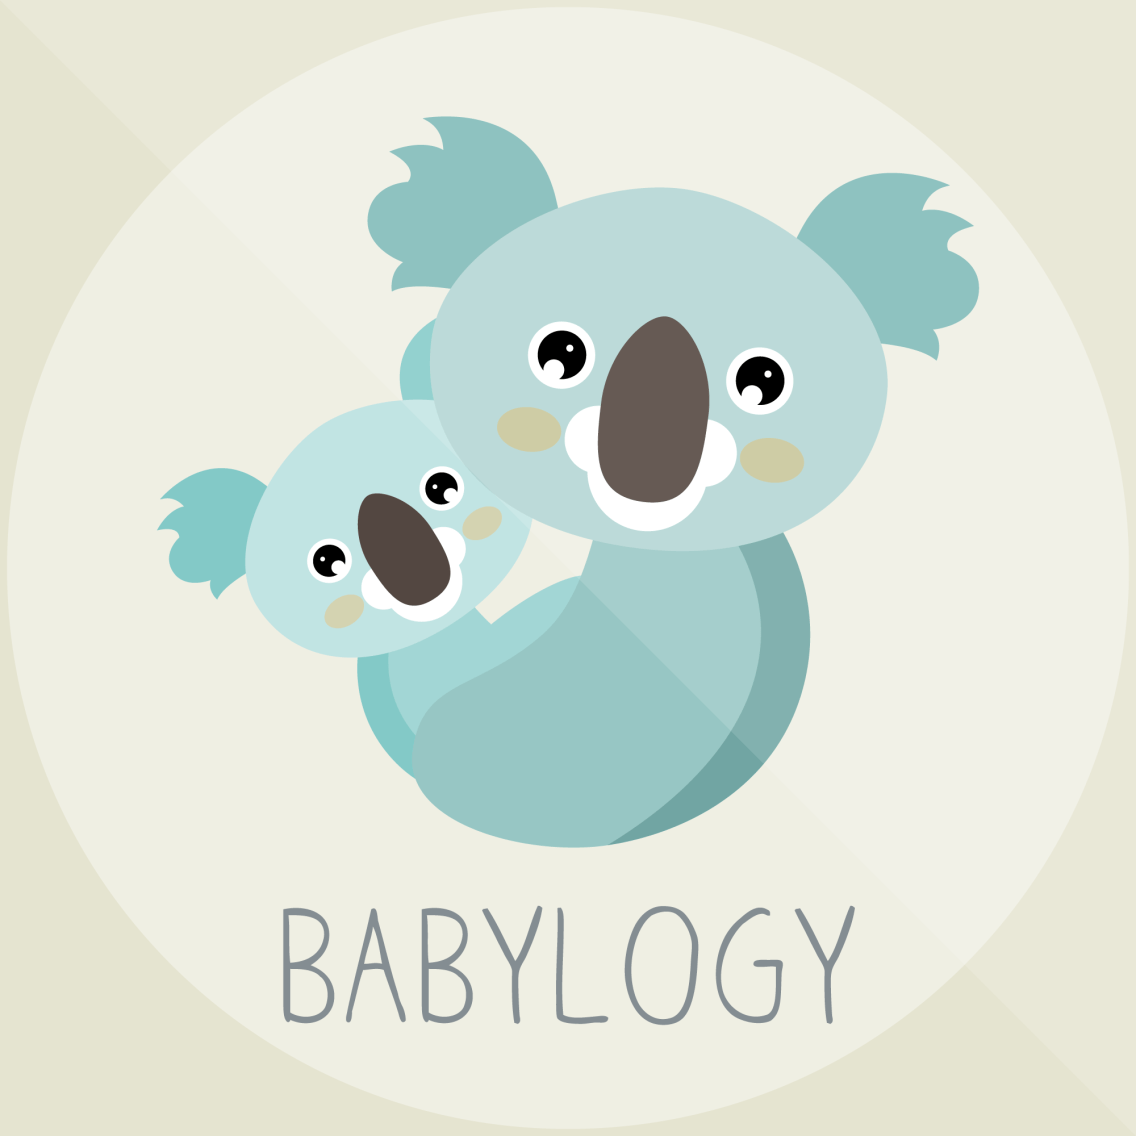 babylogy-logo-design